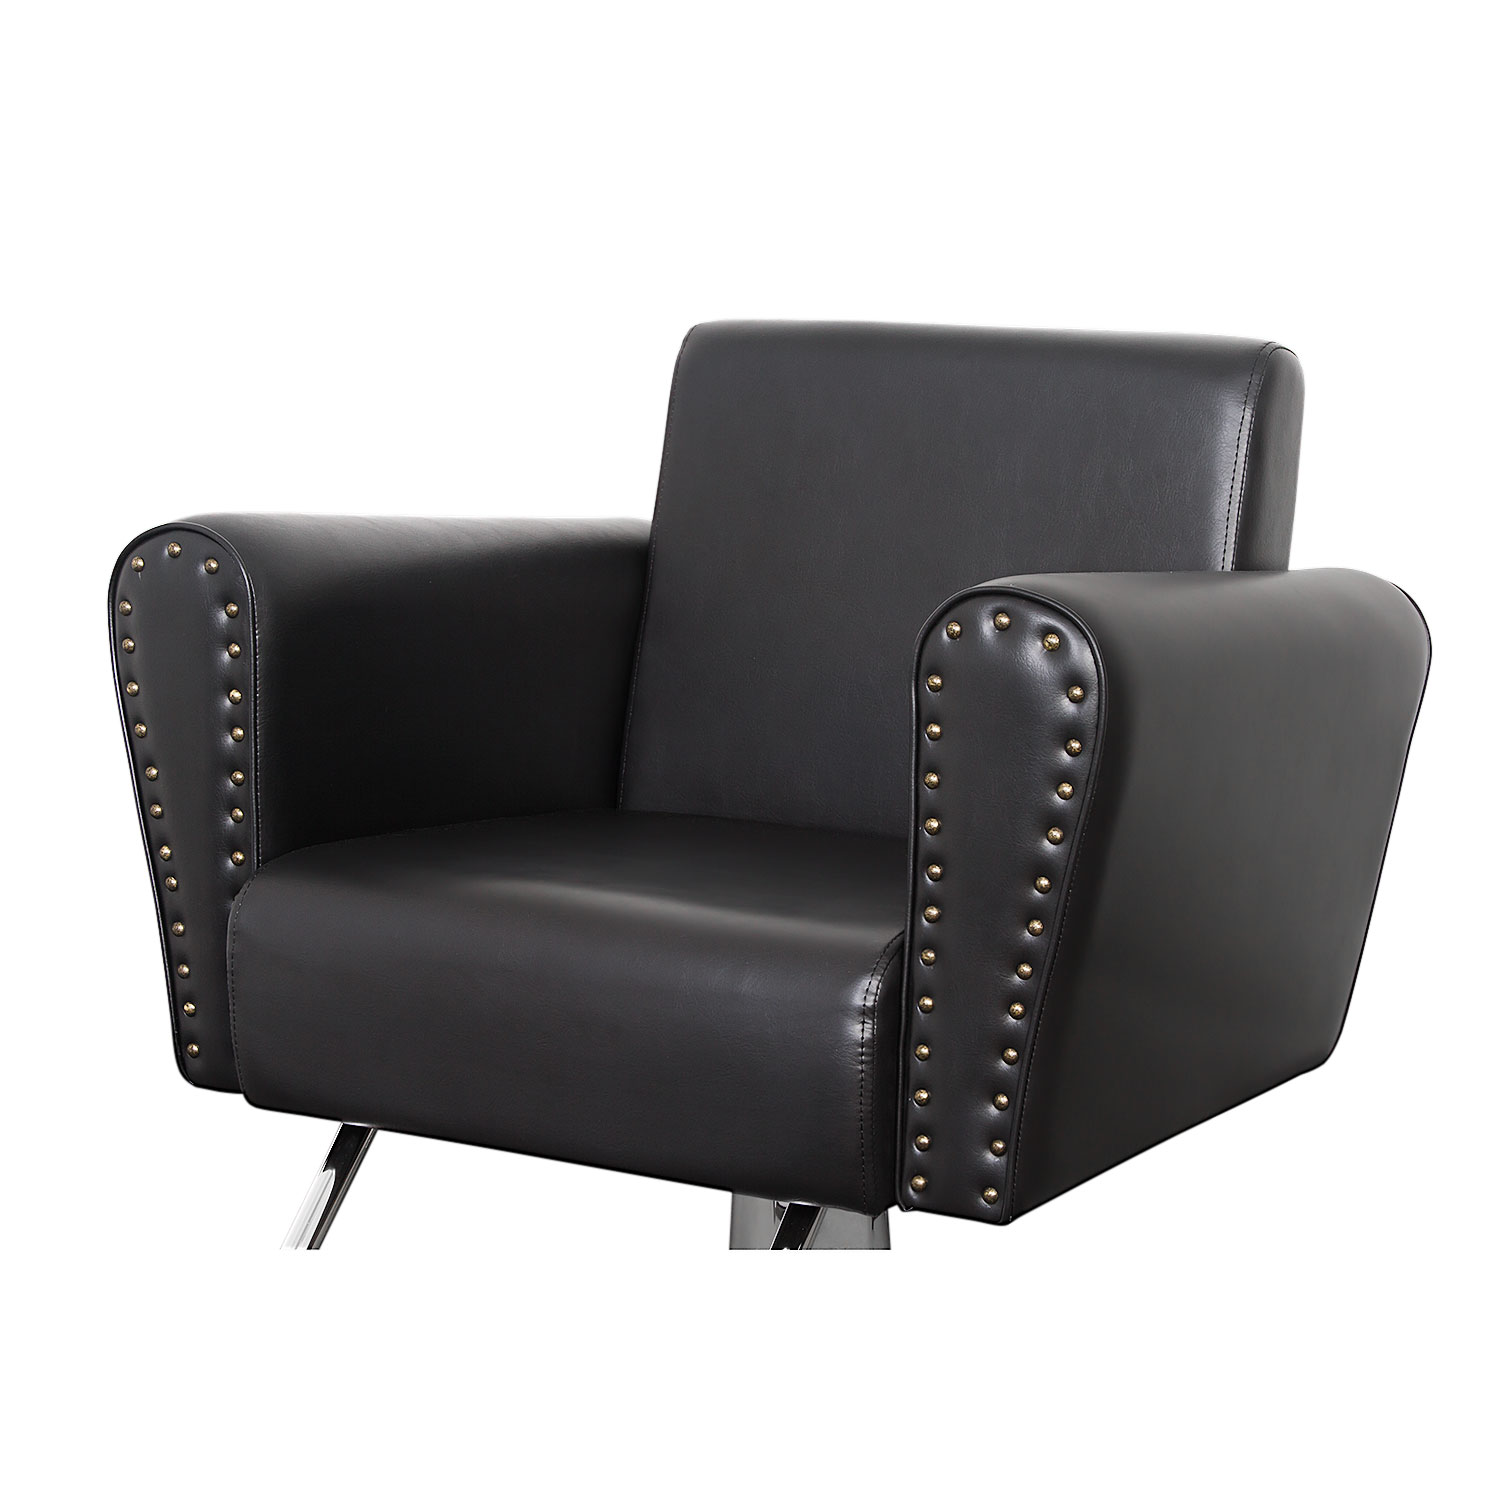 Avalon Squared Styling Chair With Nailhead Trim alternative product image 3